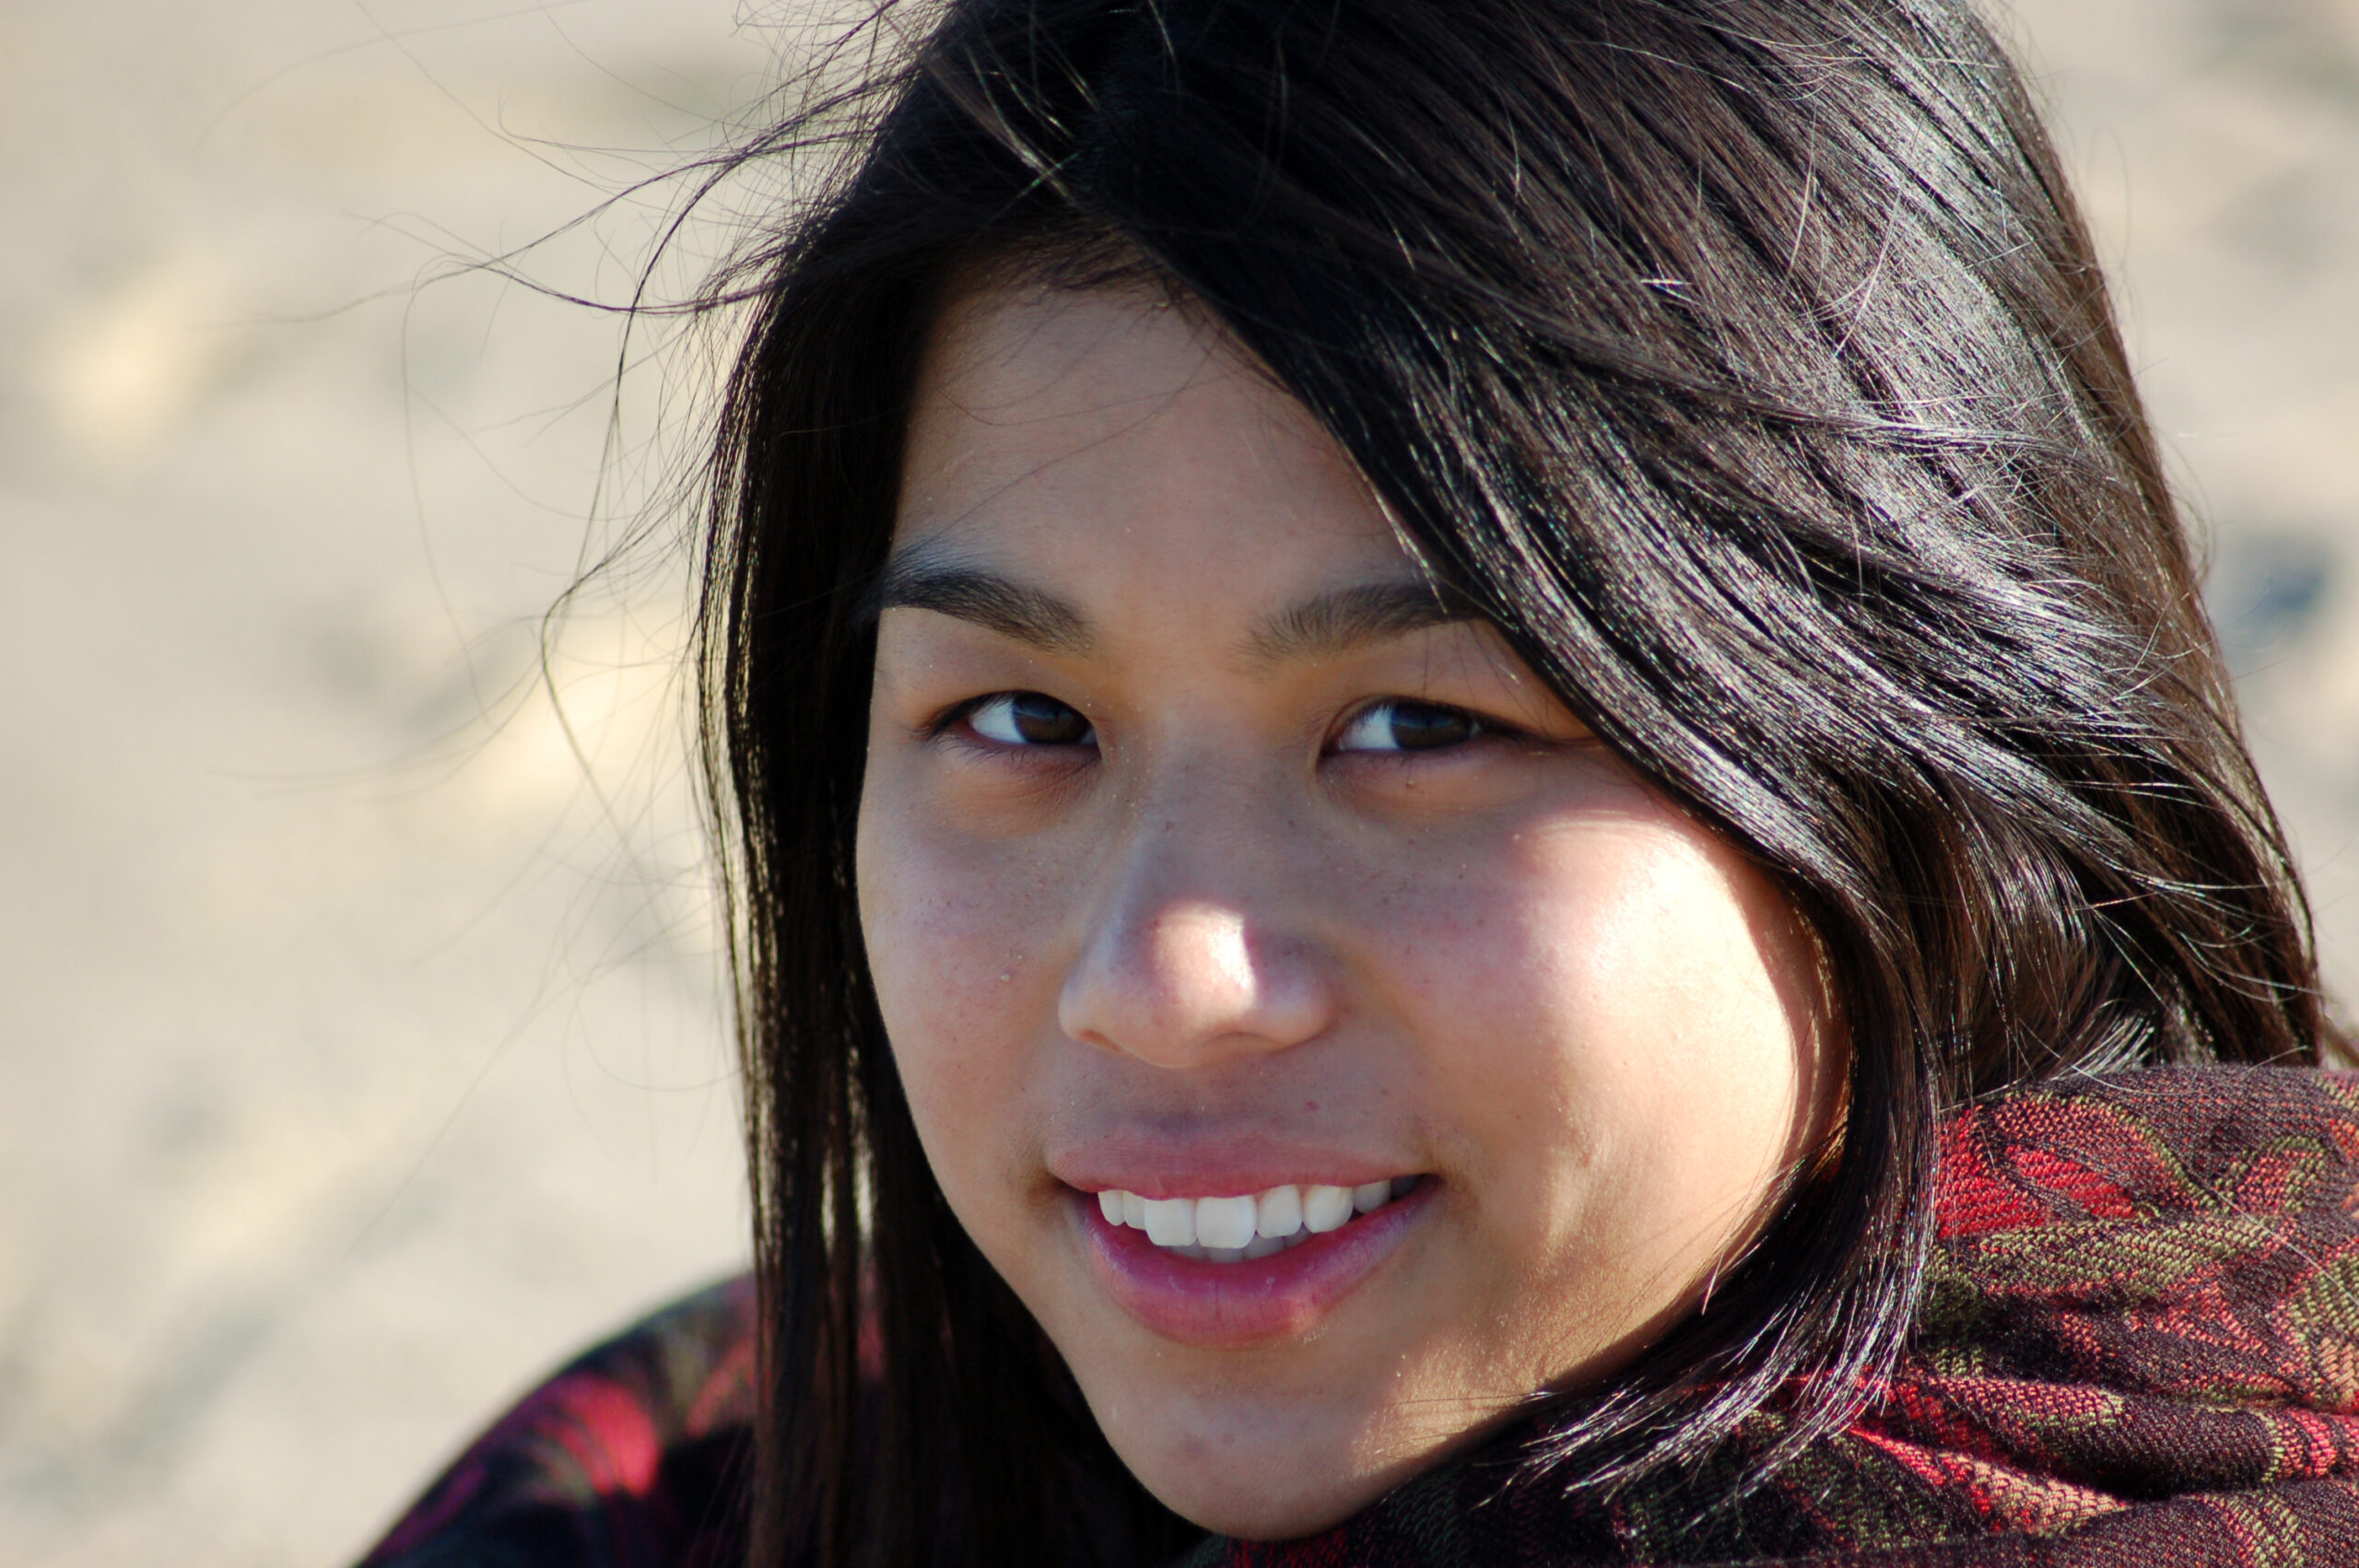 A native american woman smiles as a cold wind blows on the desert.